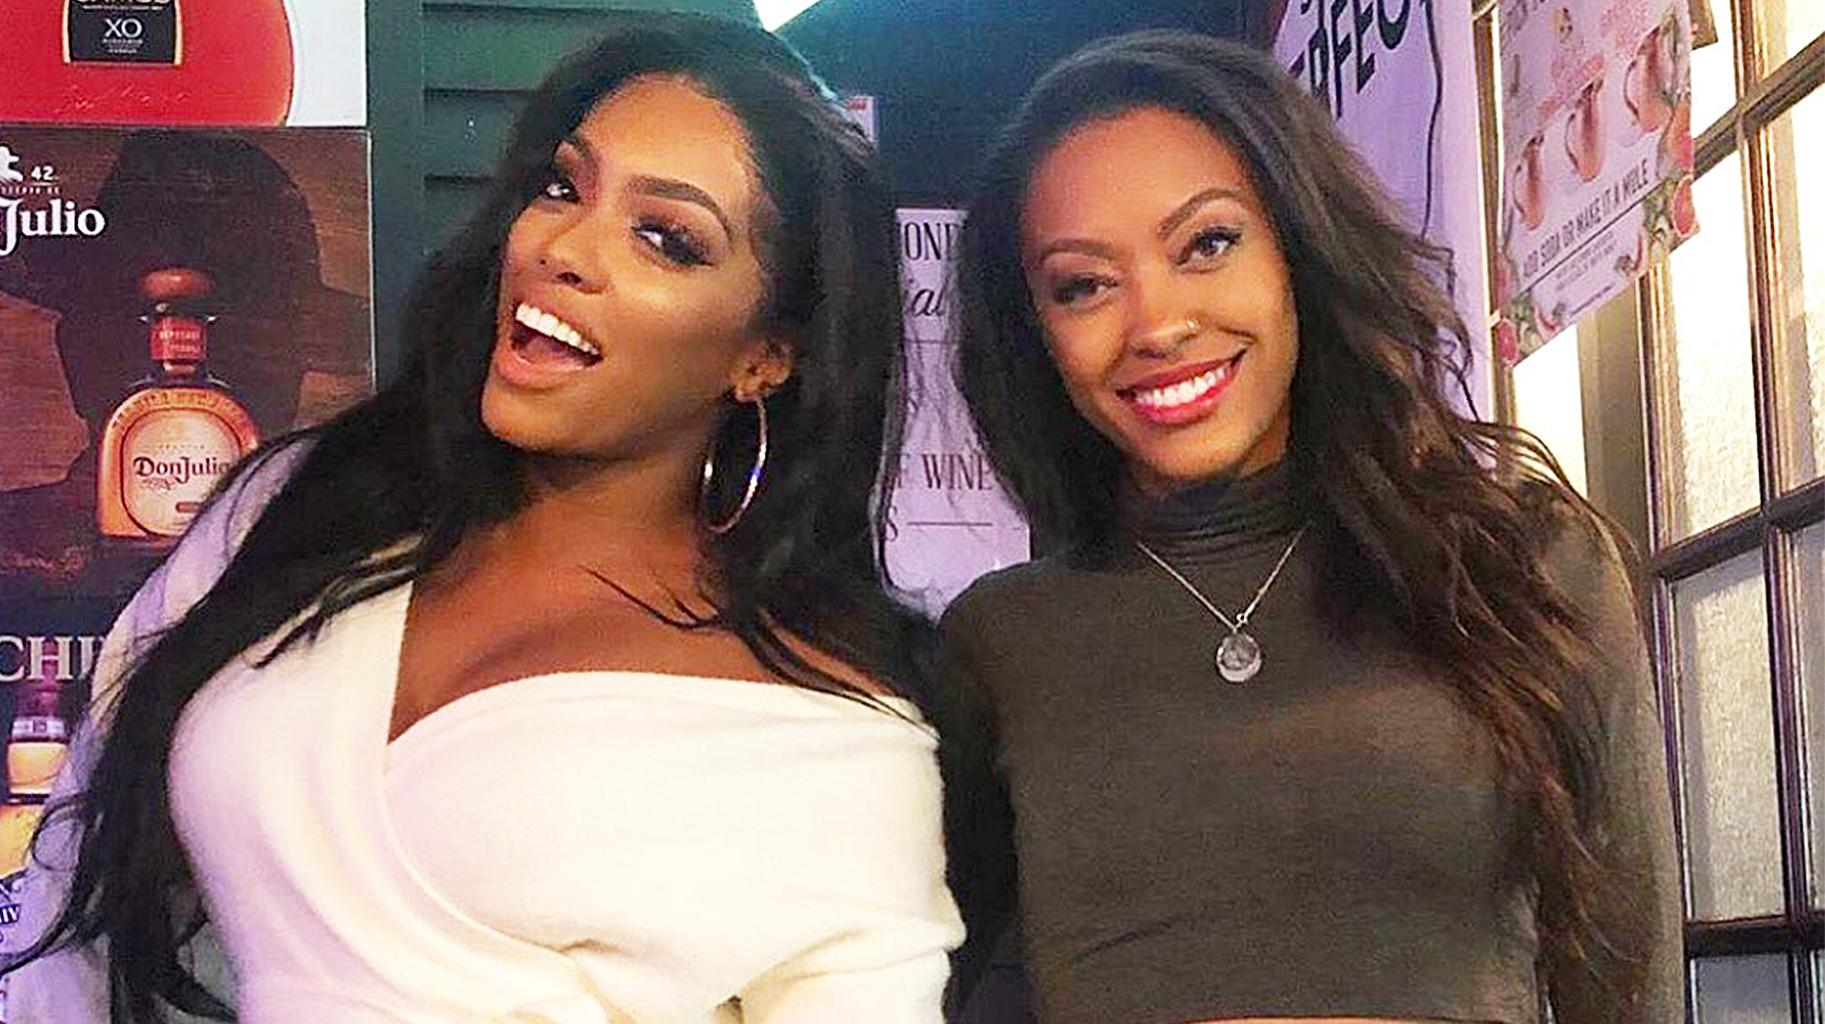 Porsha Williams Shares A Gorgeous Photo Of Her Sister, Lauren Williams And Fans Cannot Have Enough Of Her